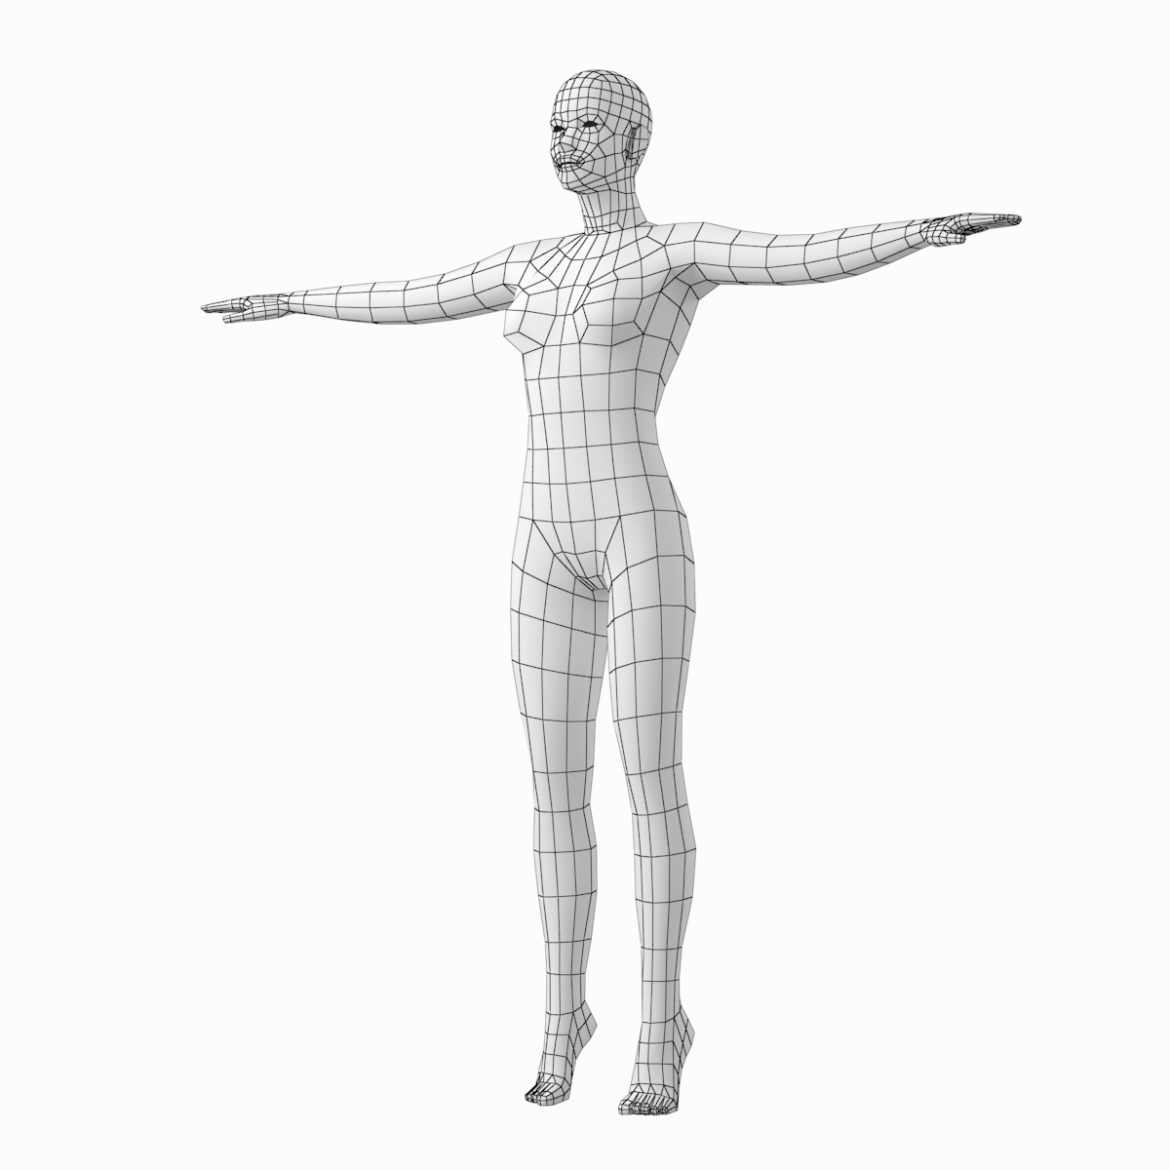 female body on toes base mesh in t-pose 3d model txt 3ds c4d dae dwg dxf fbx max ma mb obj stl png 305207